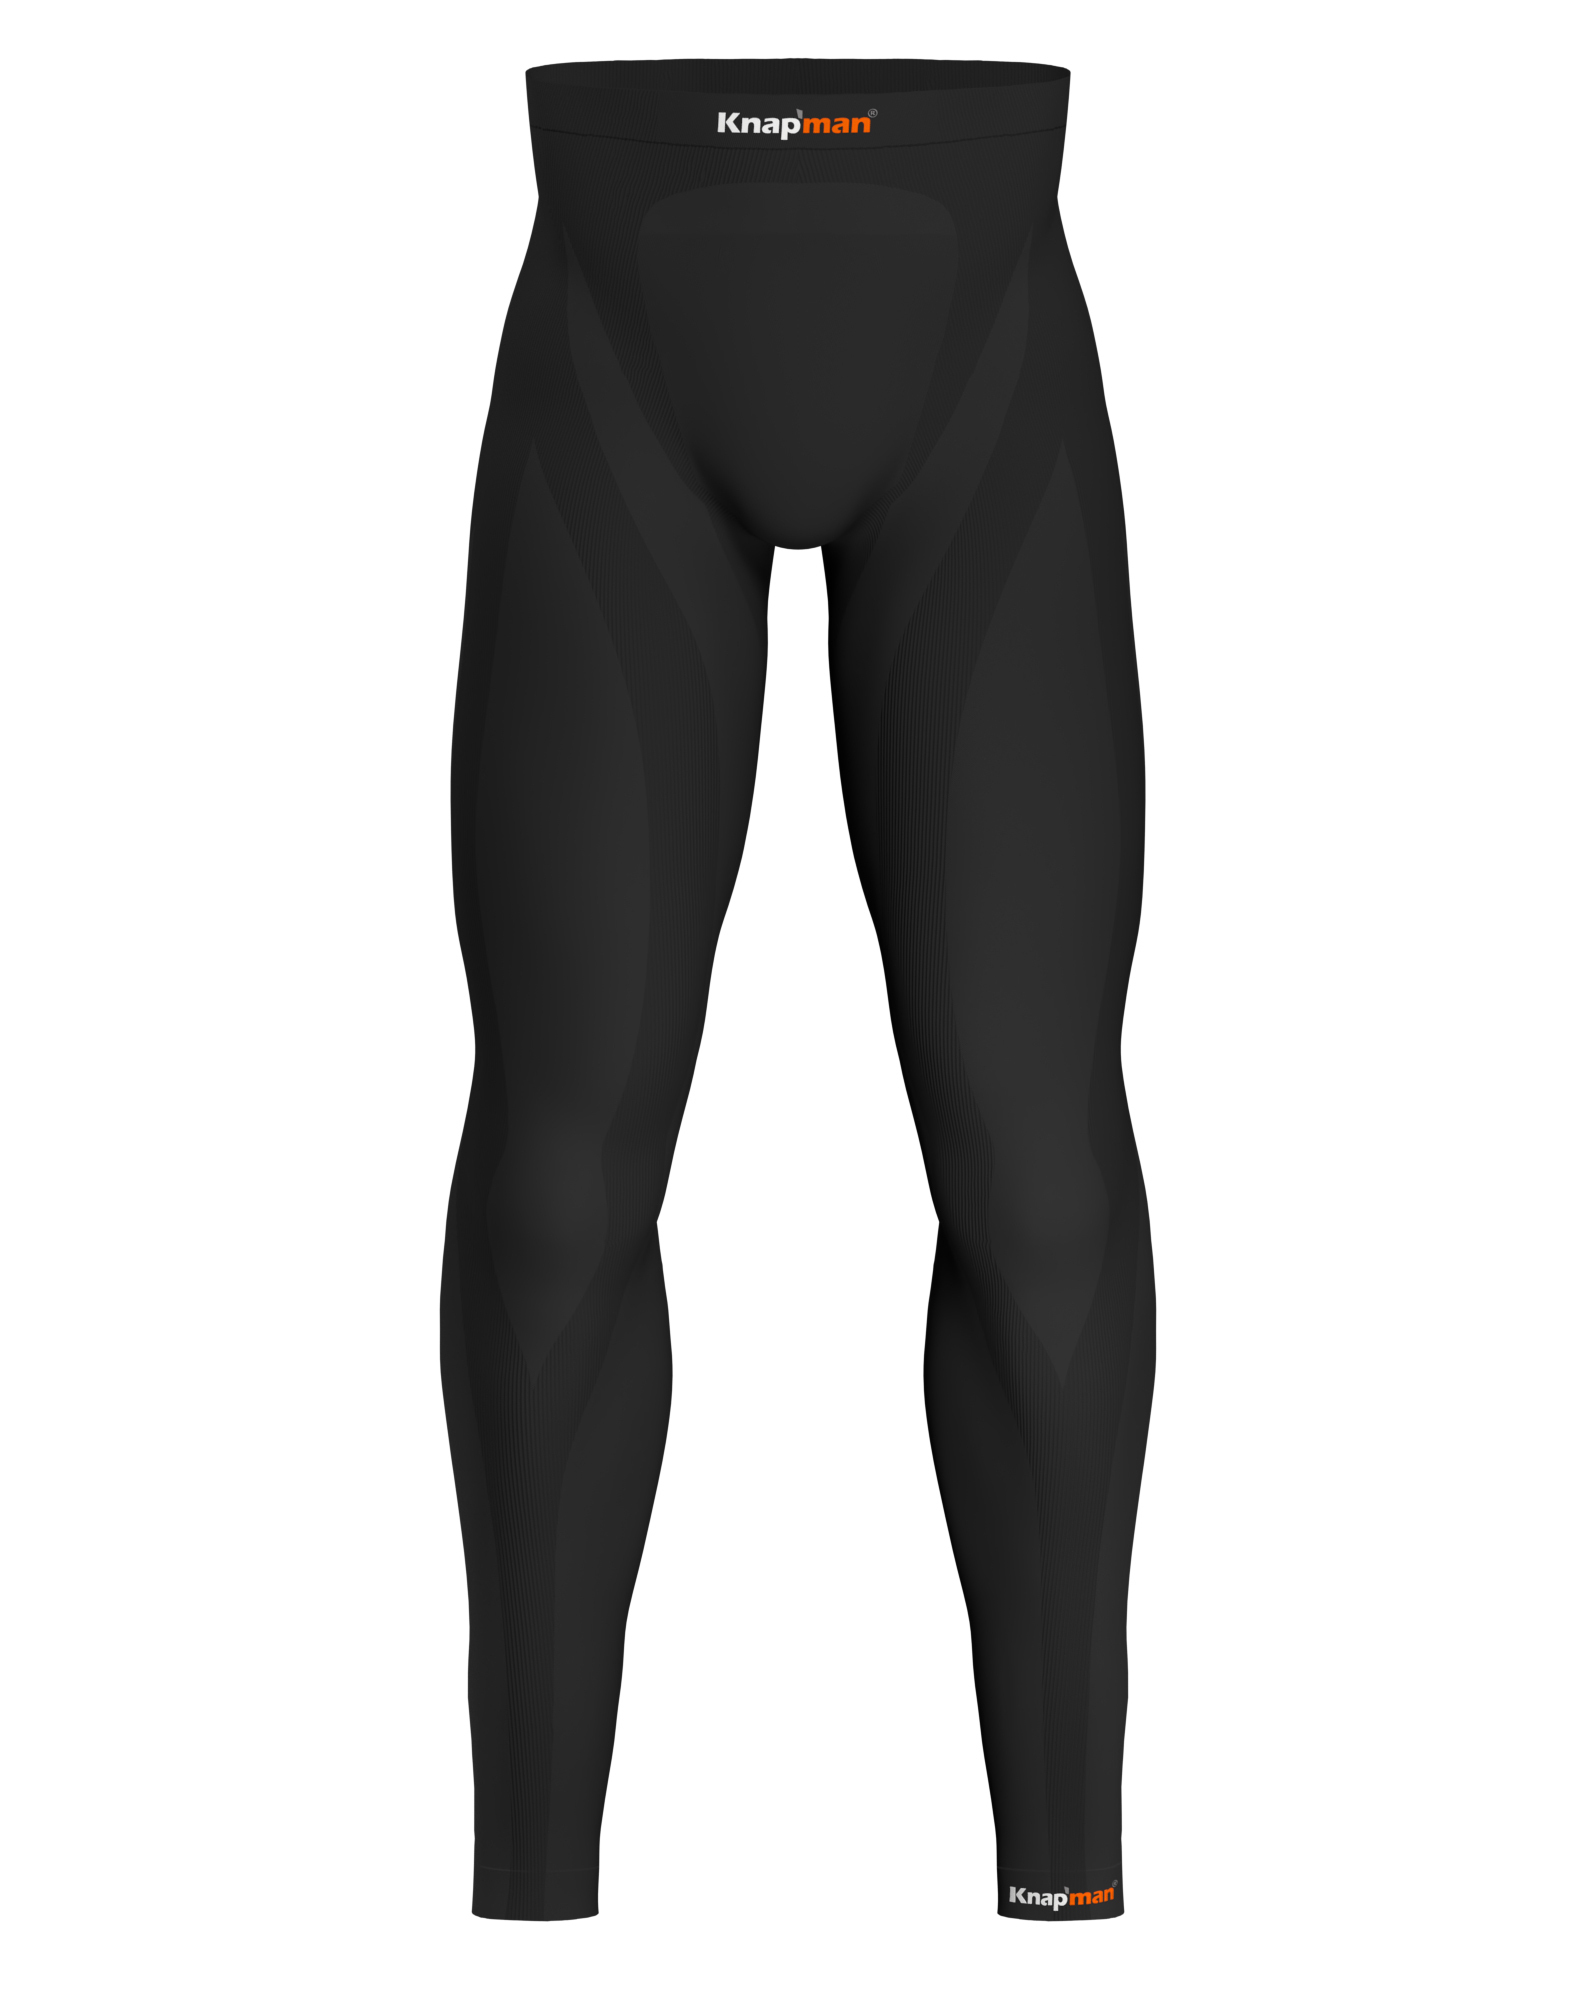 Knap'man Zoned Compression Pants Long USP 45% Zwart